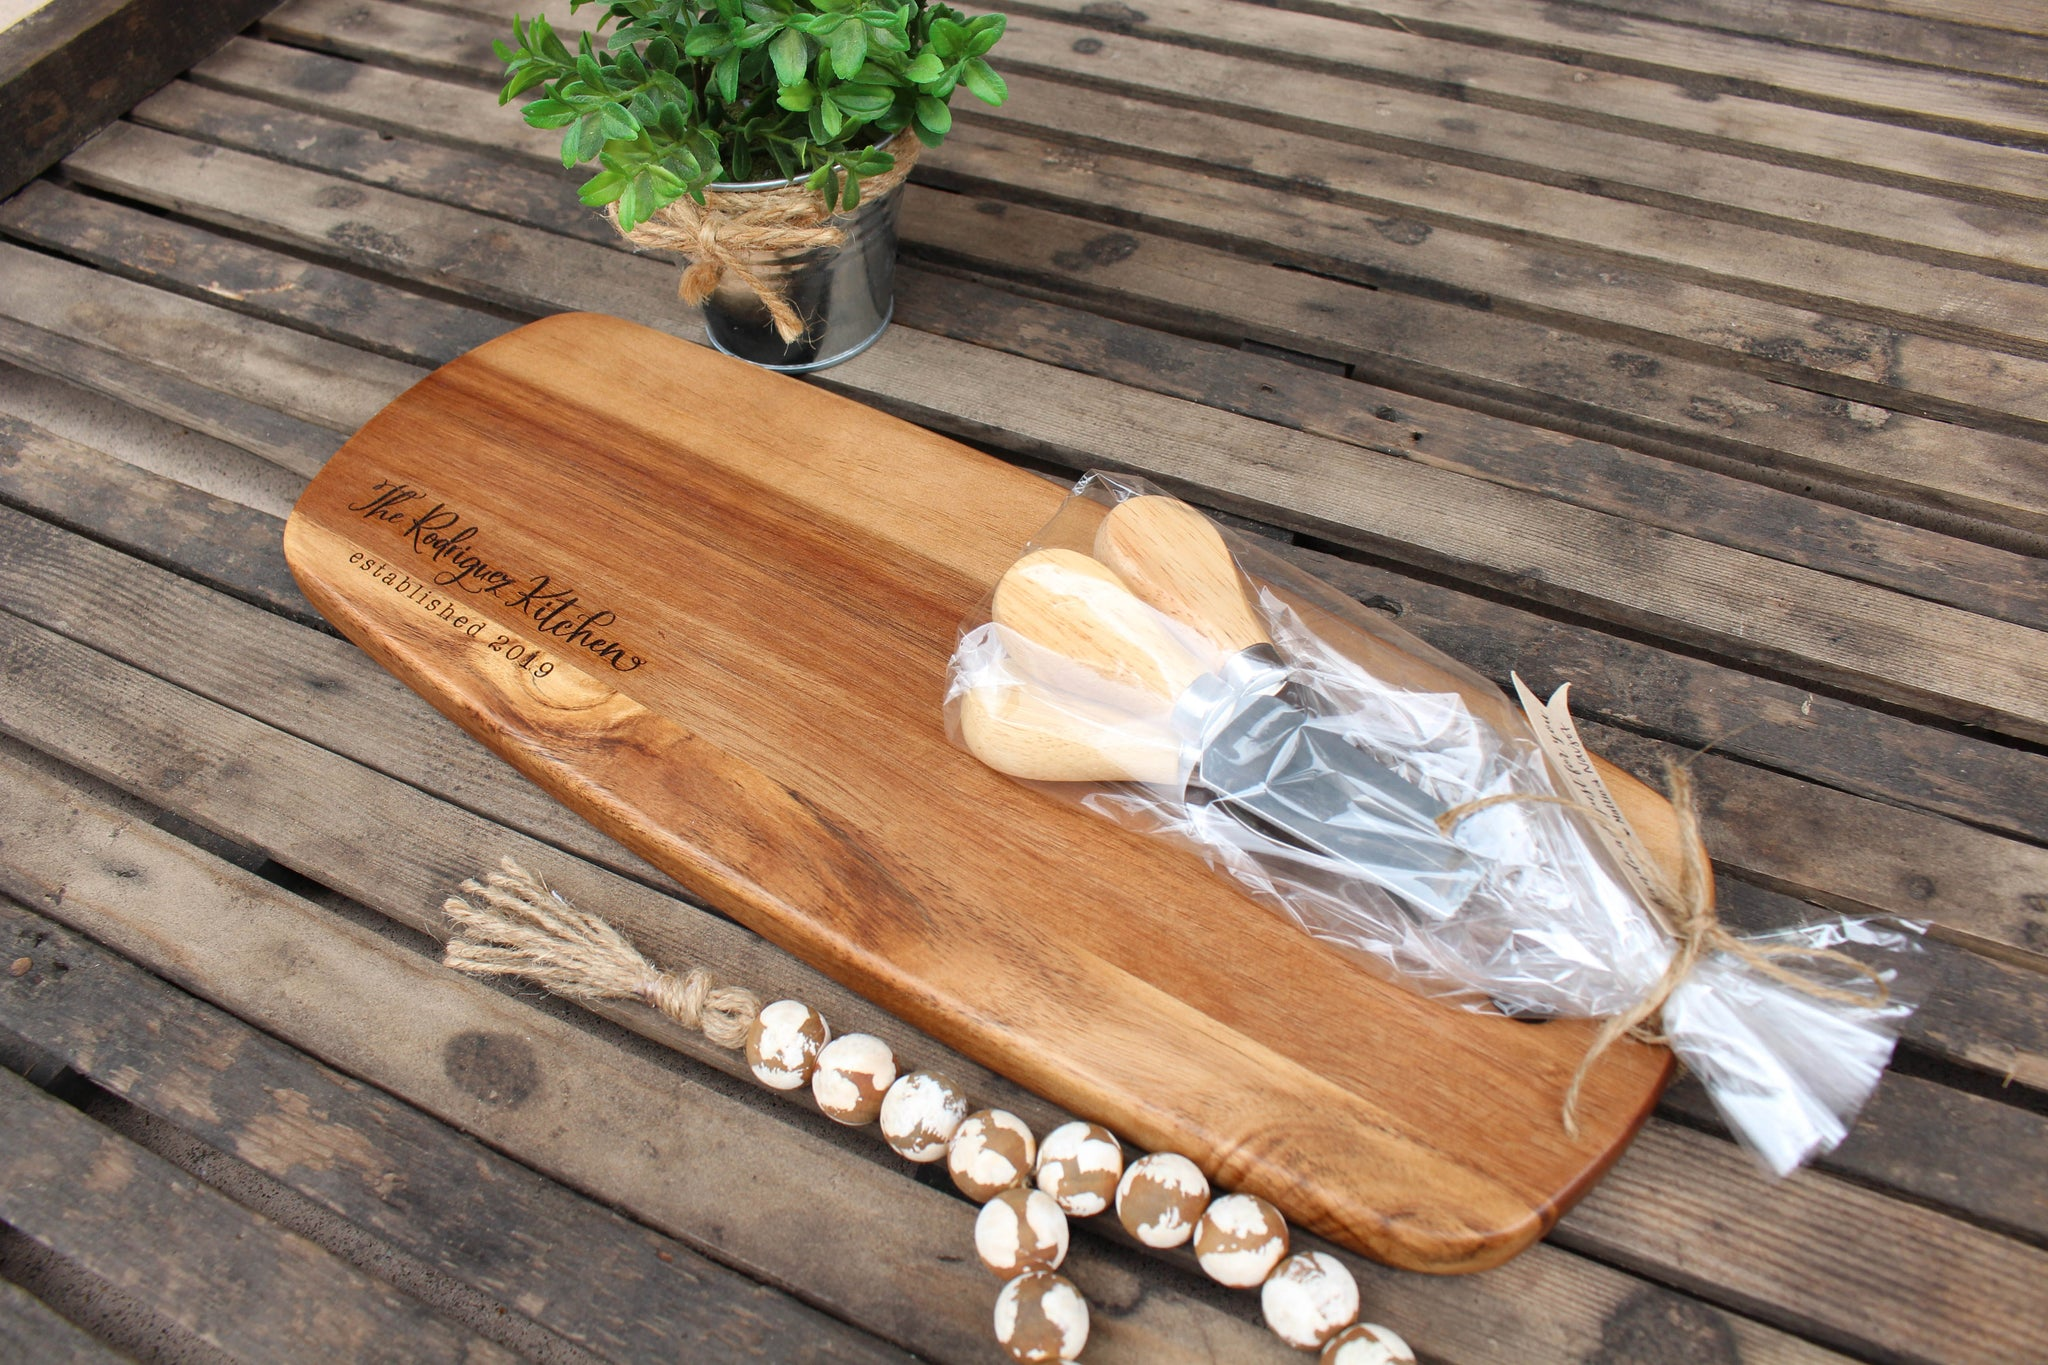 Skinny Cheese Board + Knife Set // Personalized // FREE SHIPPING